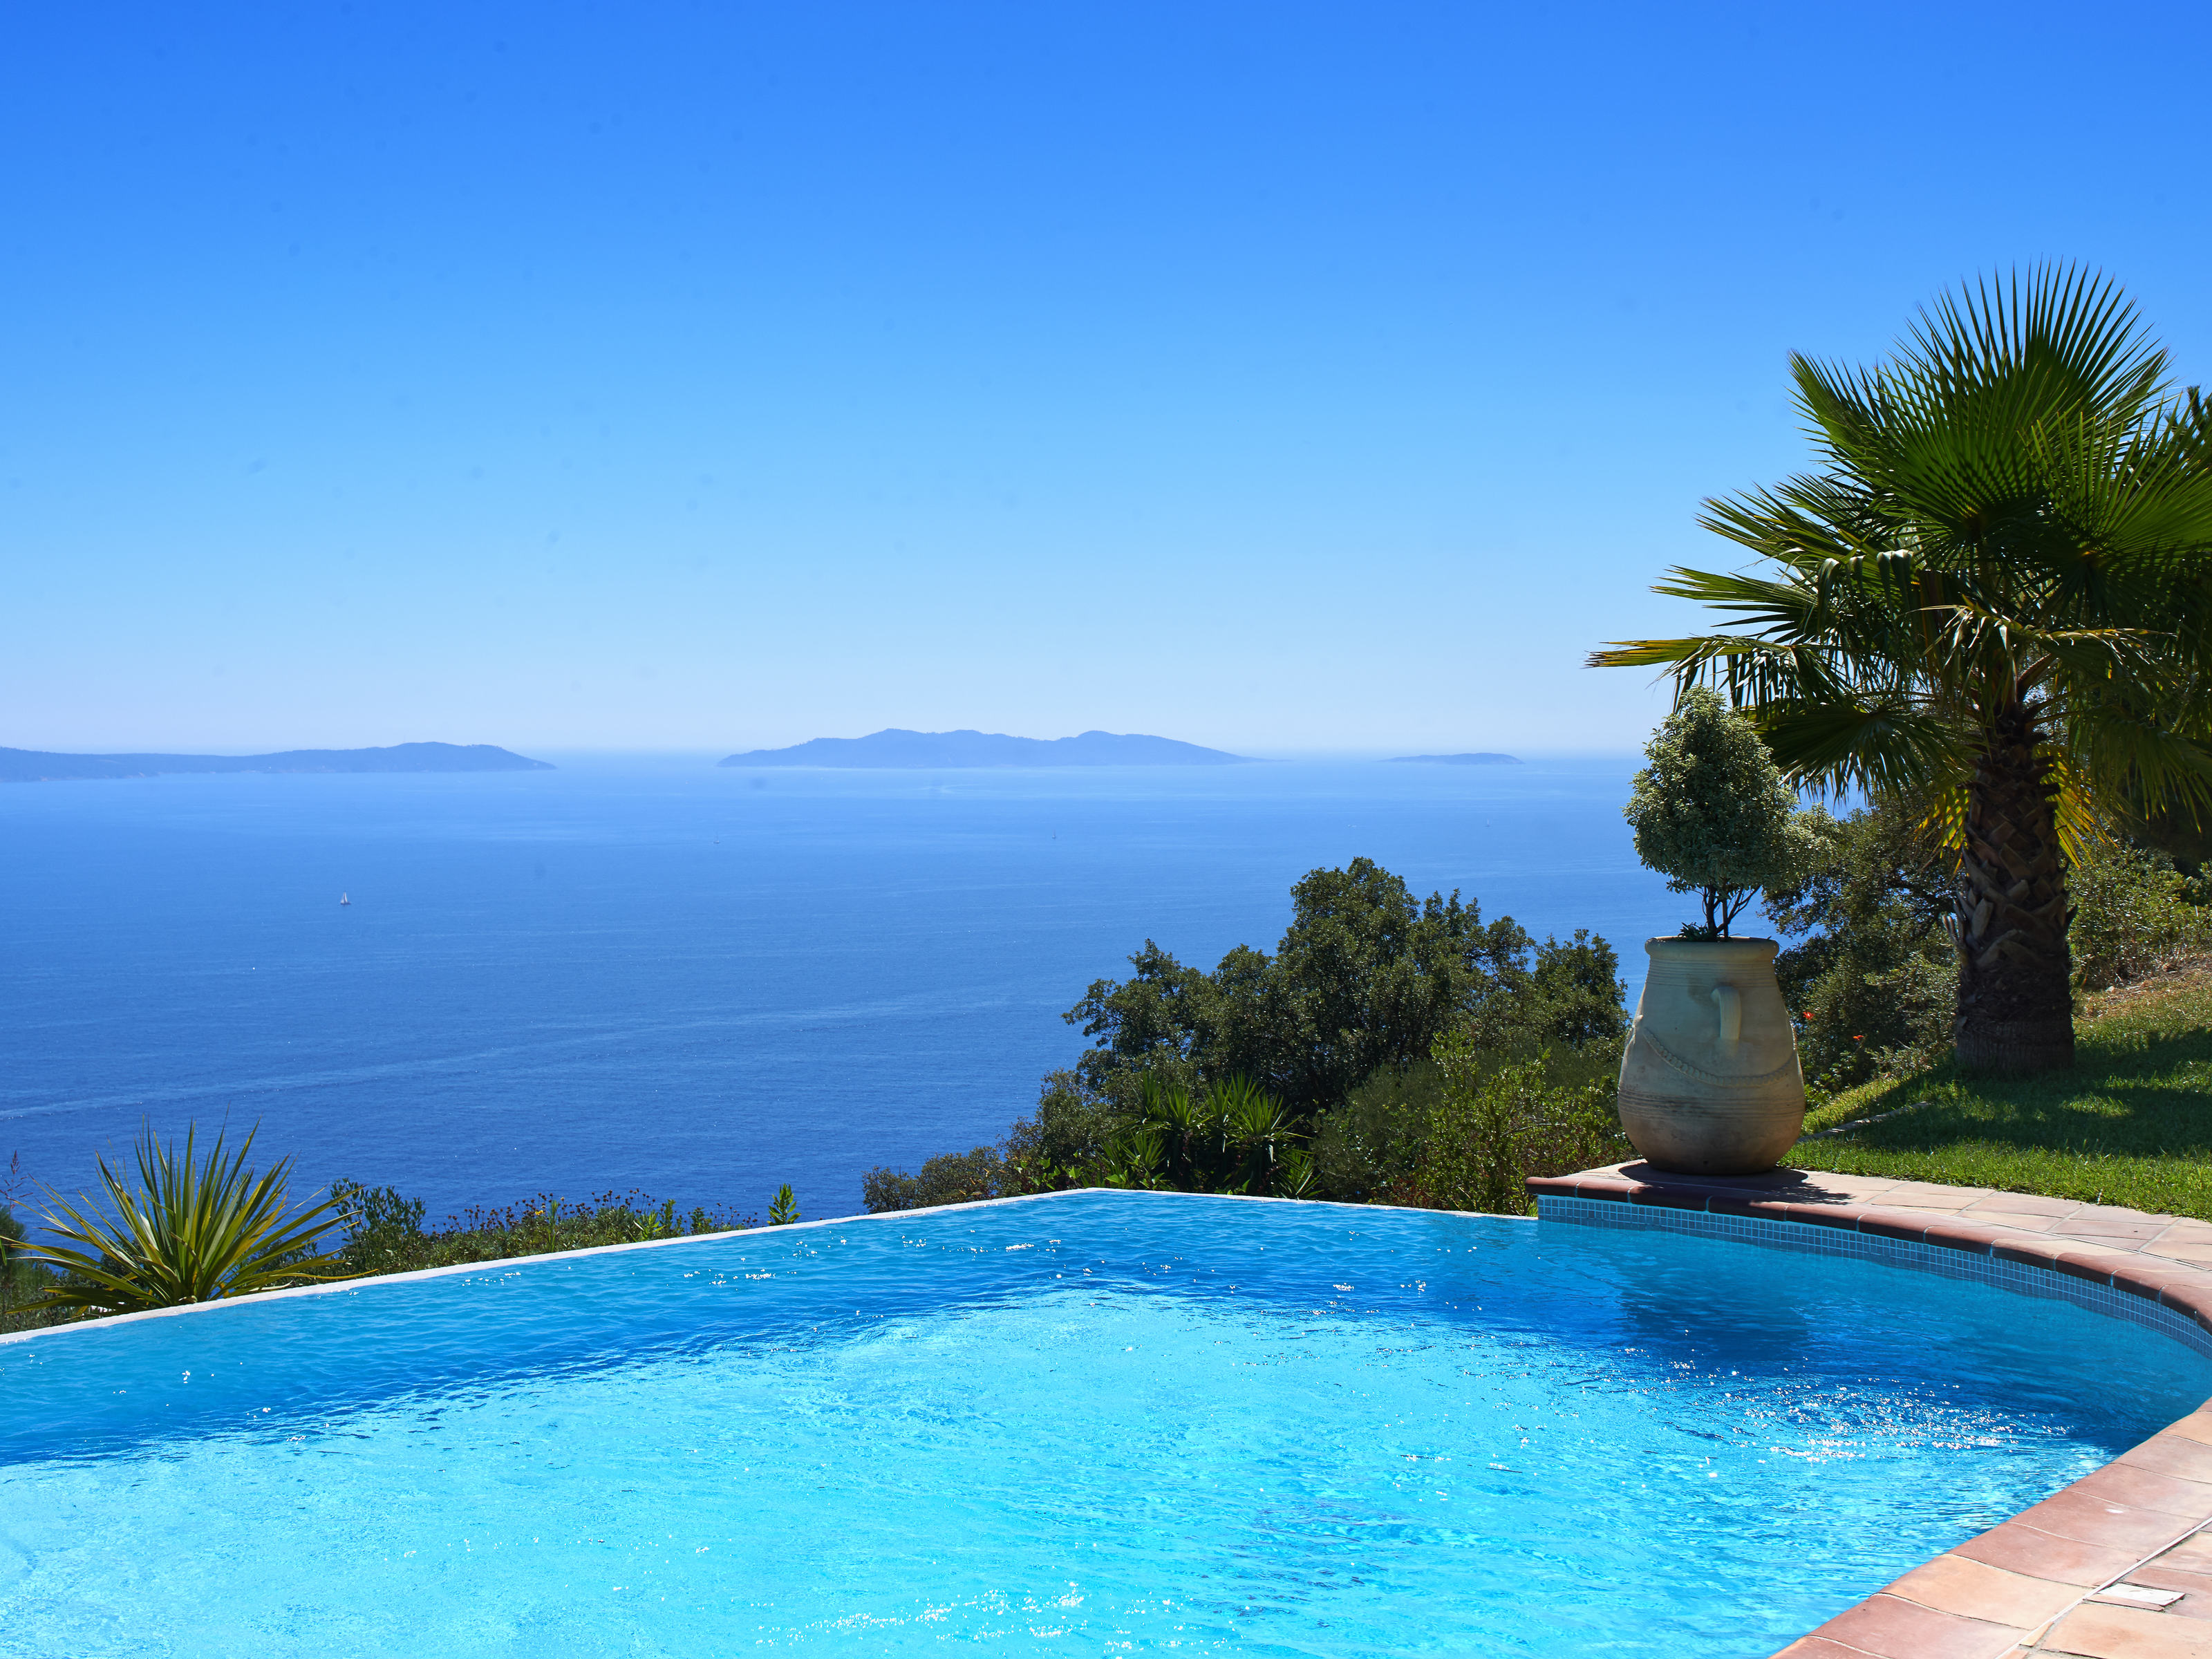 Single Family Home for Sale at Luxurious provençal style property with exceptional sea views Other France, Other Areas In France 83820 France